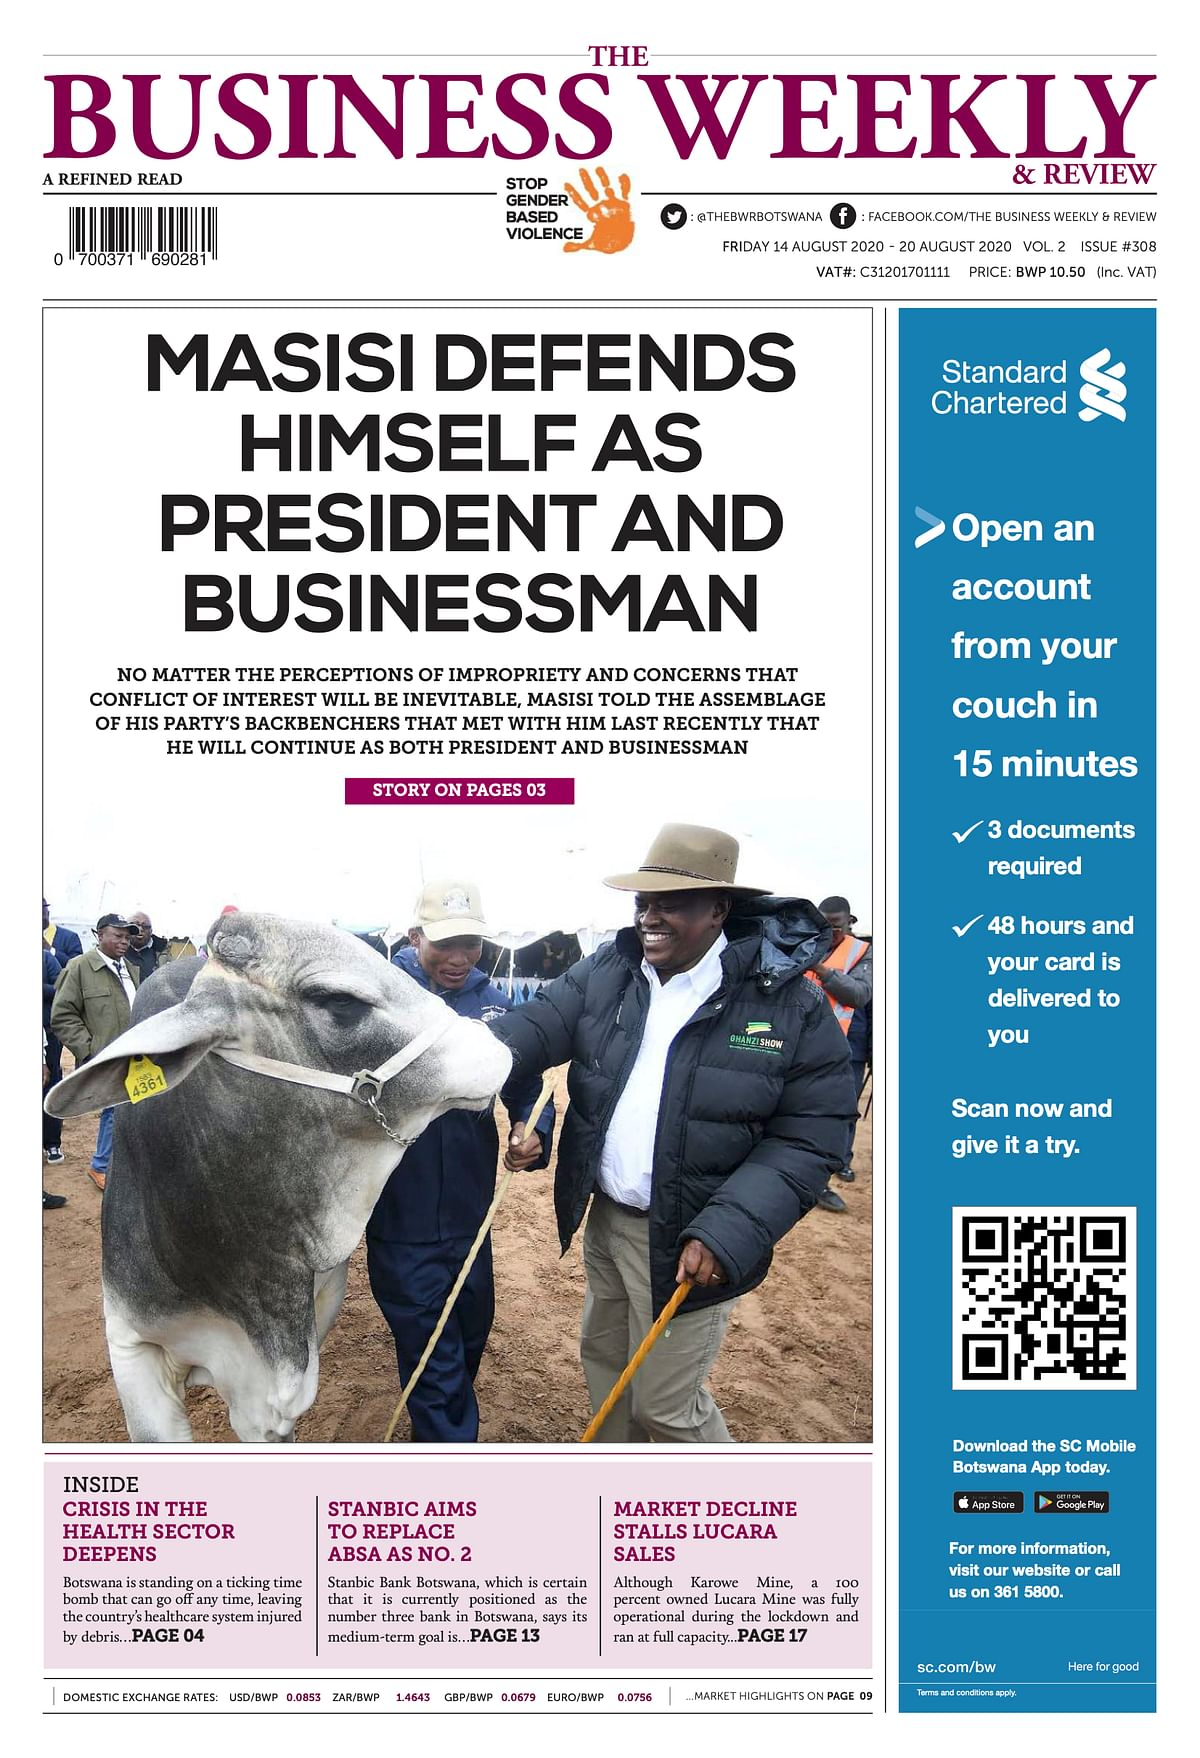 The Business Weekly & Review 14 August 2020